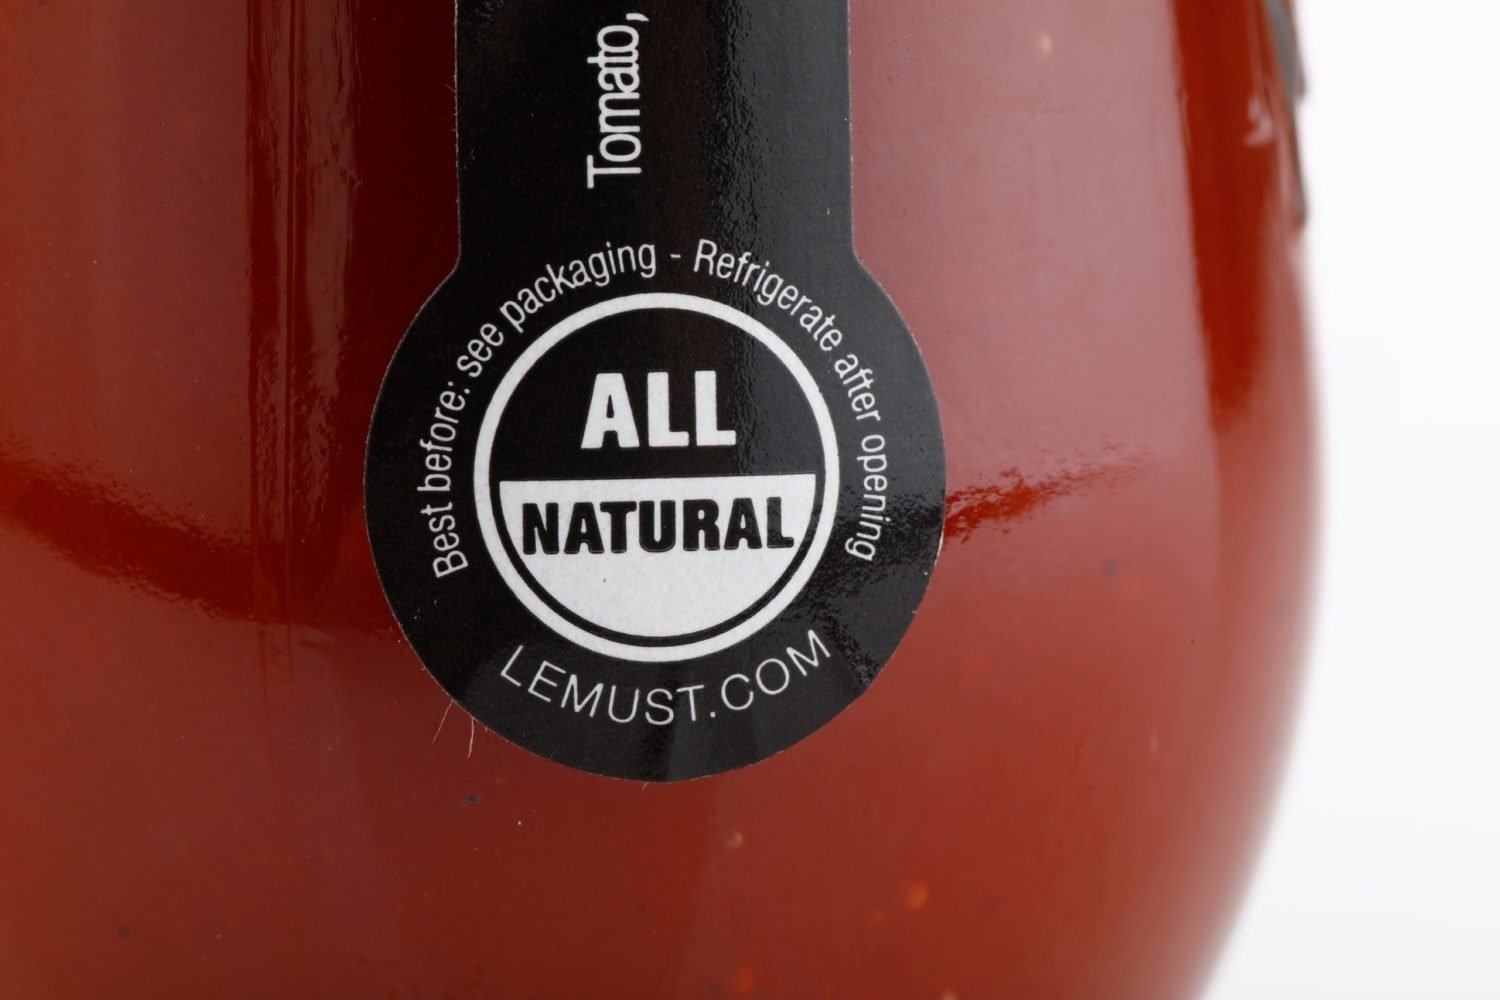 lemust luxury Ketchup for room service